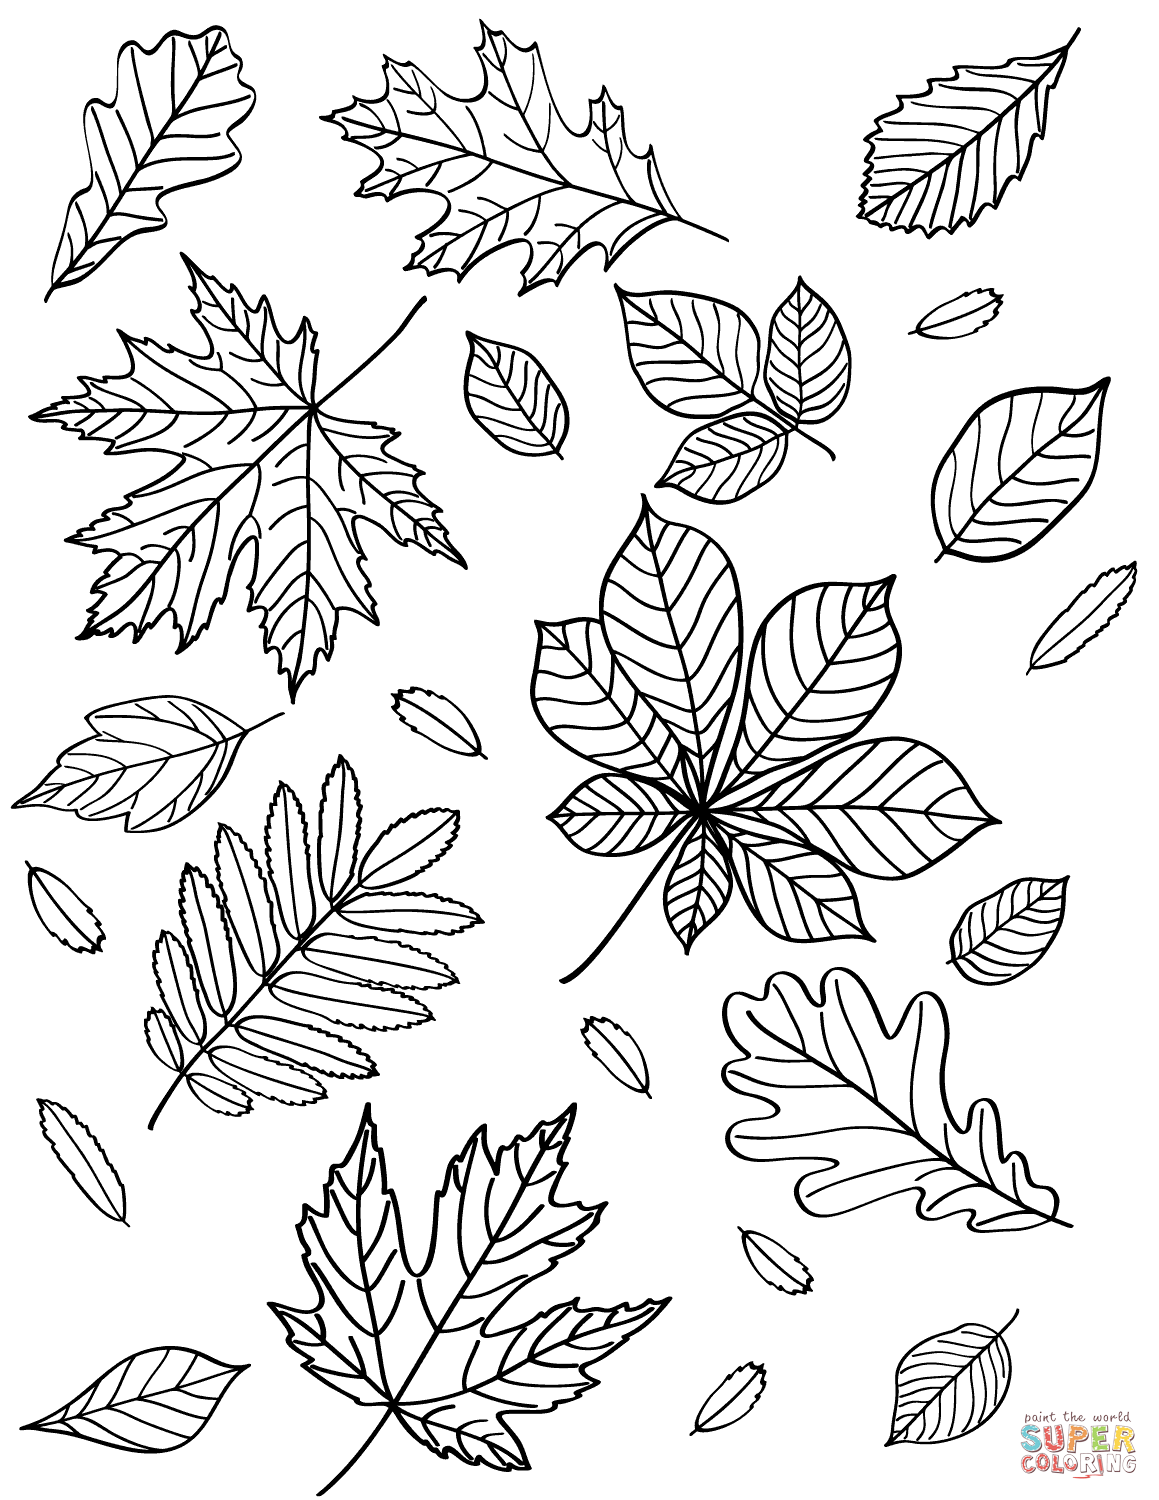 autumn leaves pictures to colour maple leaf is the autumn leaves coloring page kids play pictures colour autumn leaves to